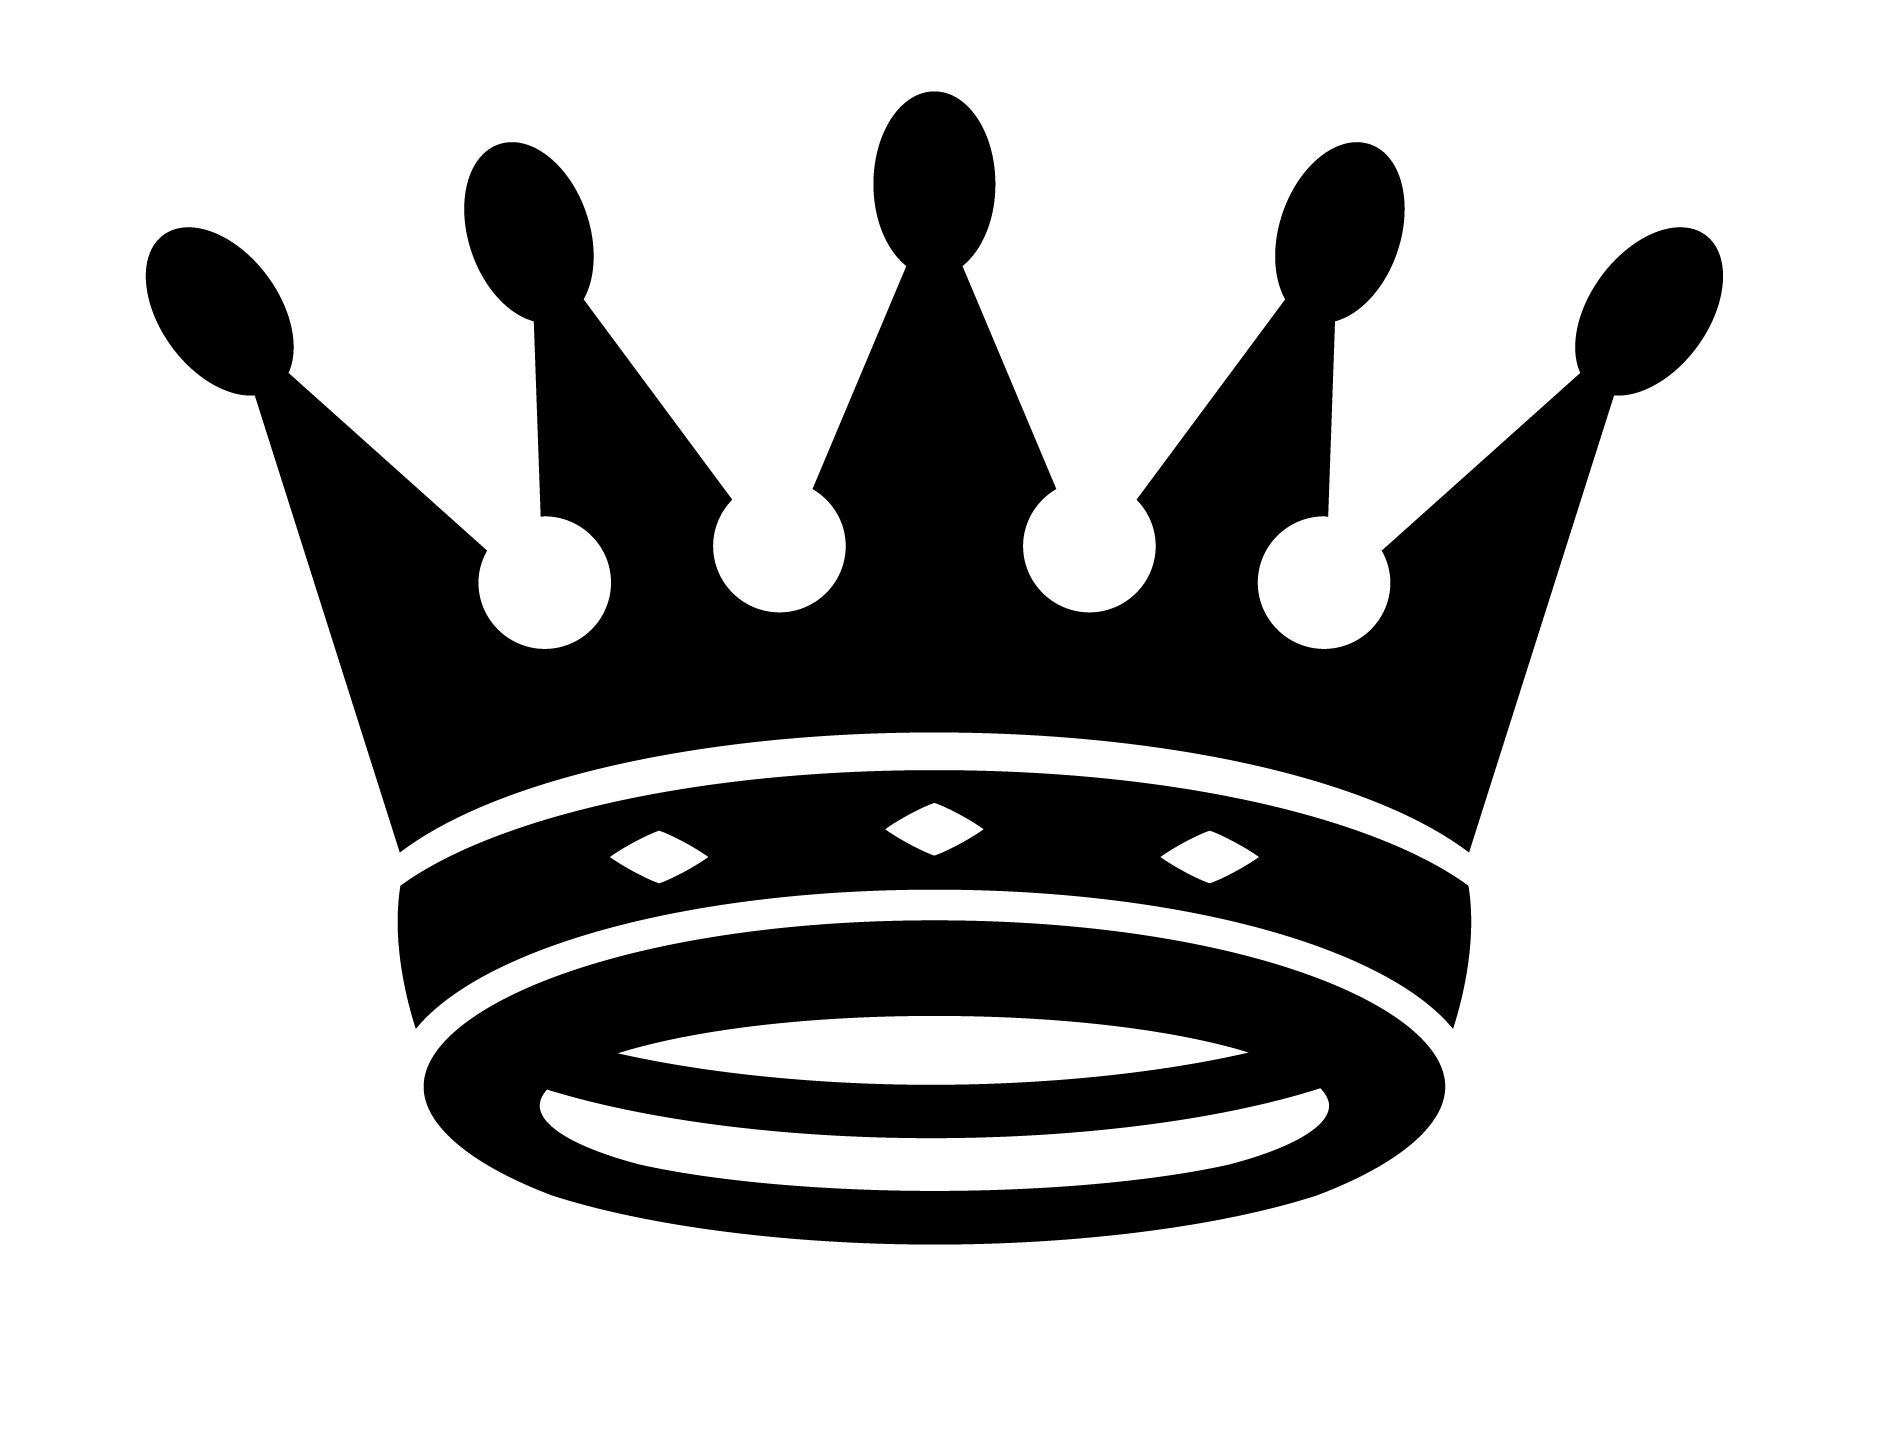 Queen crown crown king and queen clip art cliparts and others.